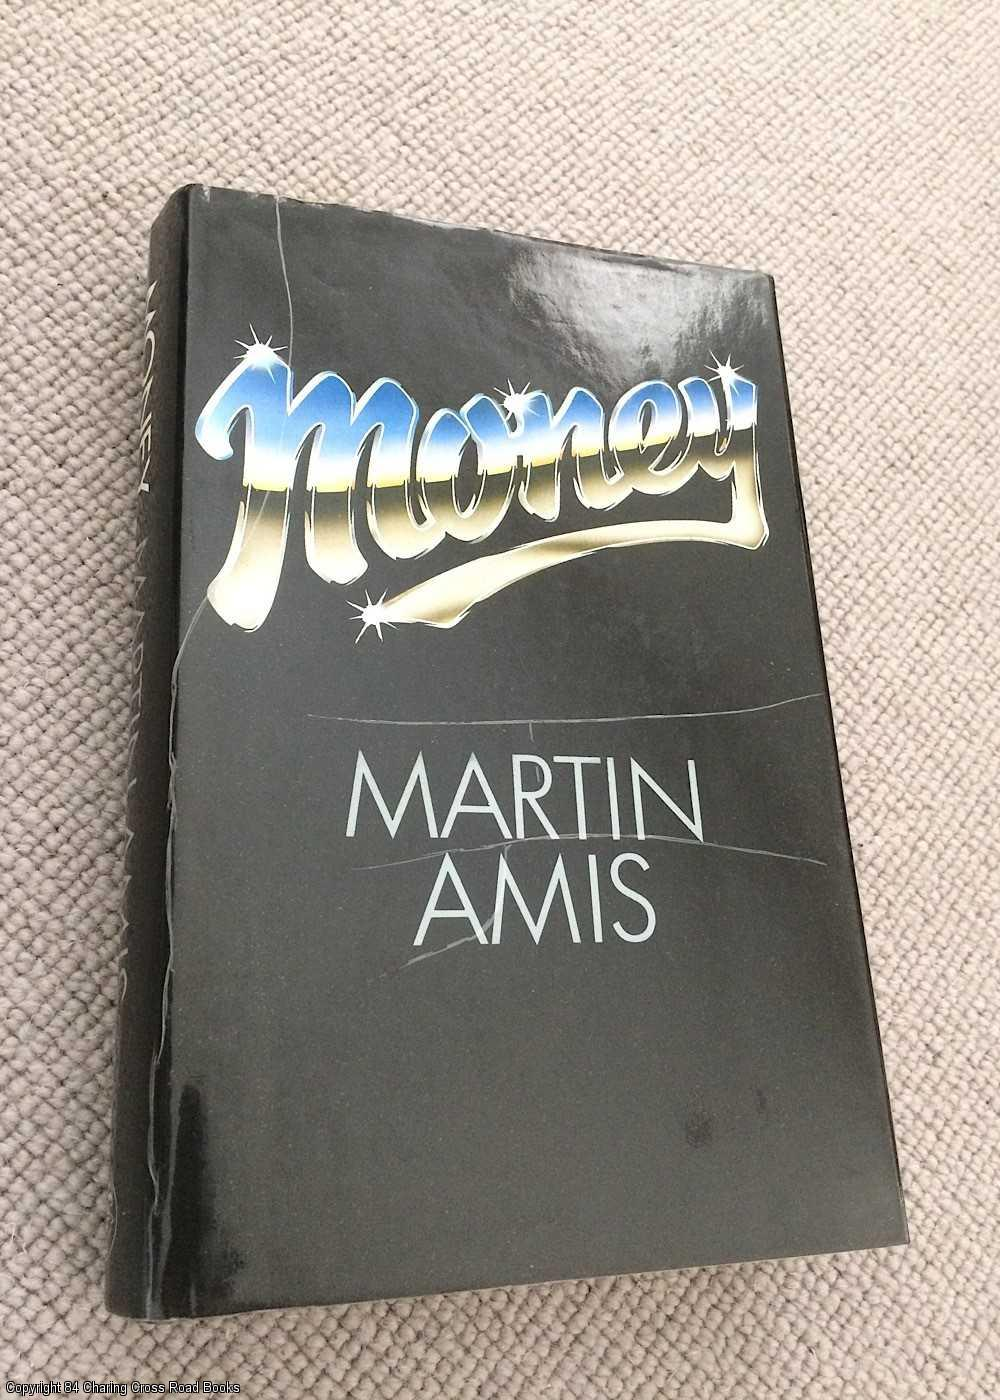 AMIS, MARTIN - Money: A Suicide Note